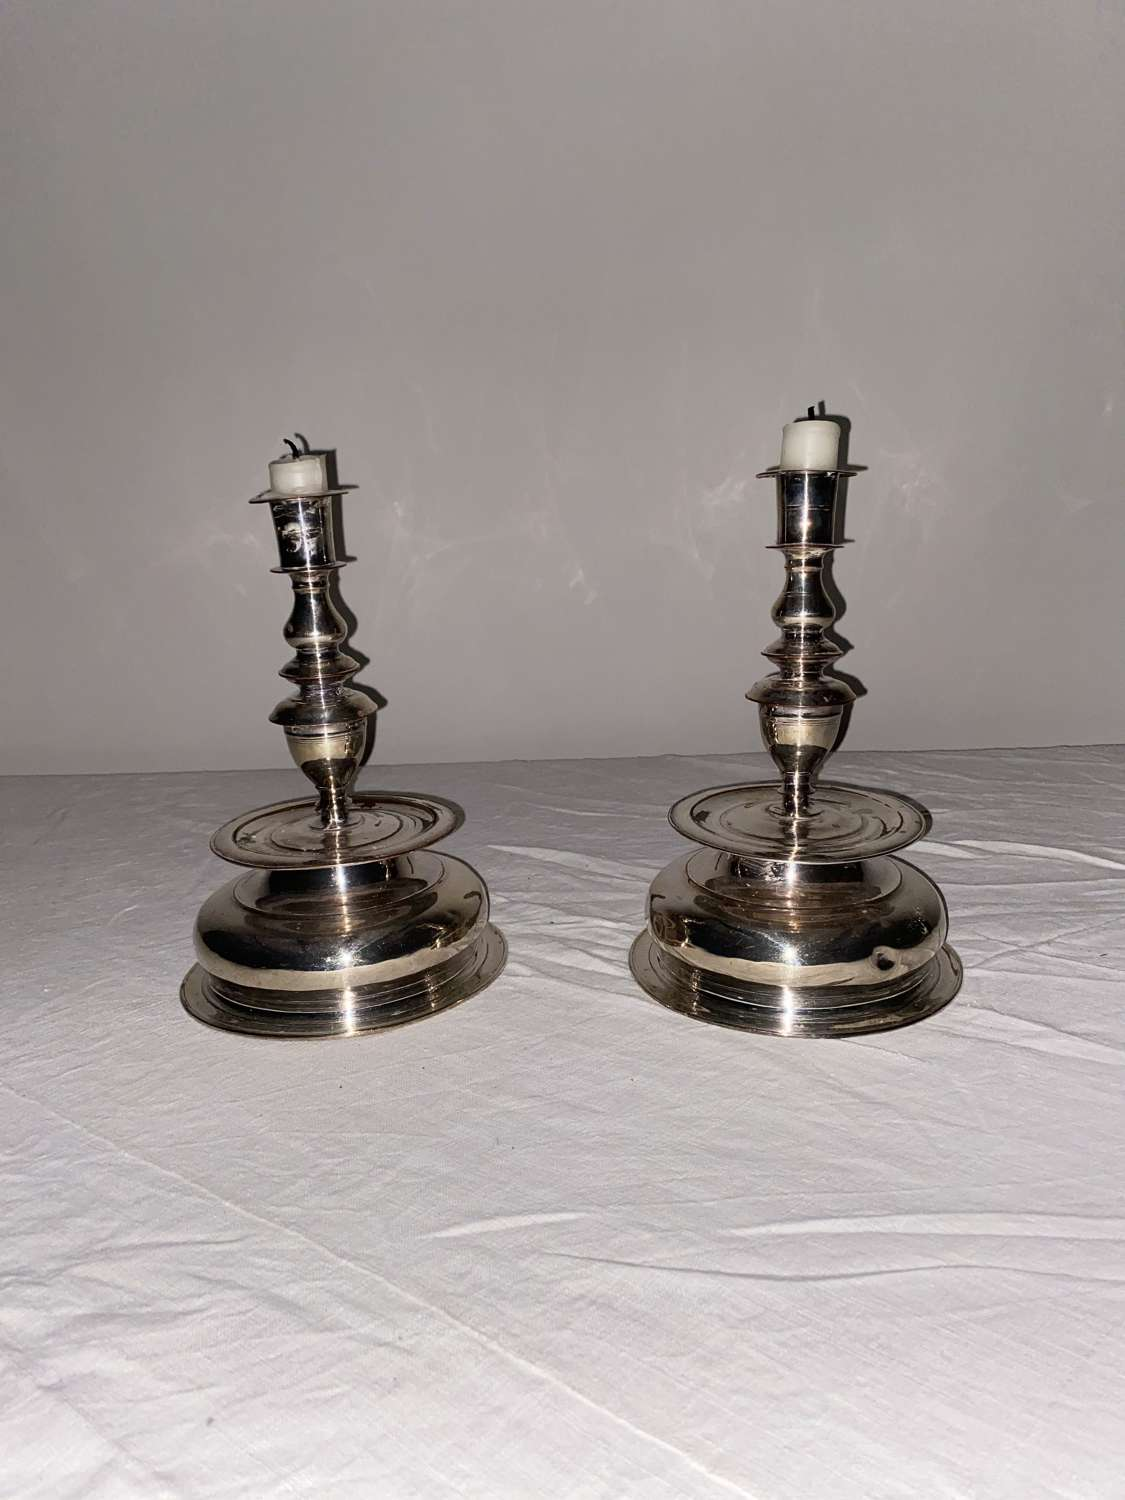 A pair of Silver candlestick holders